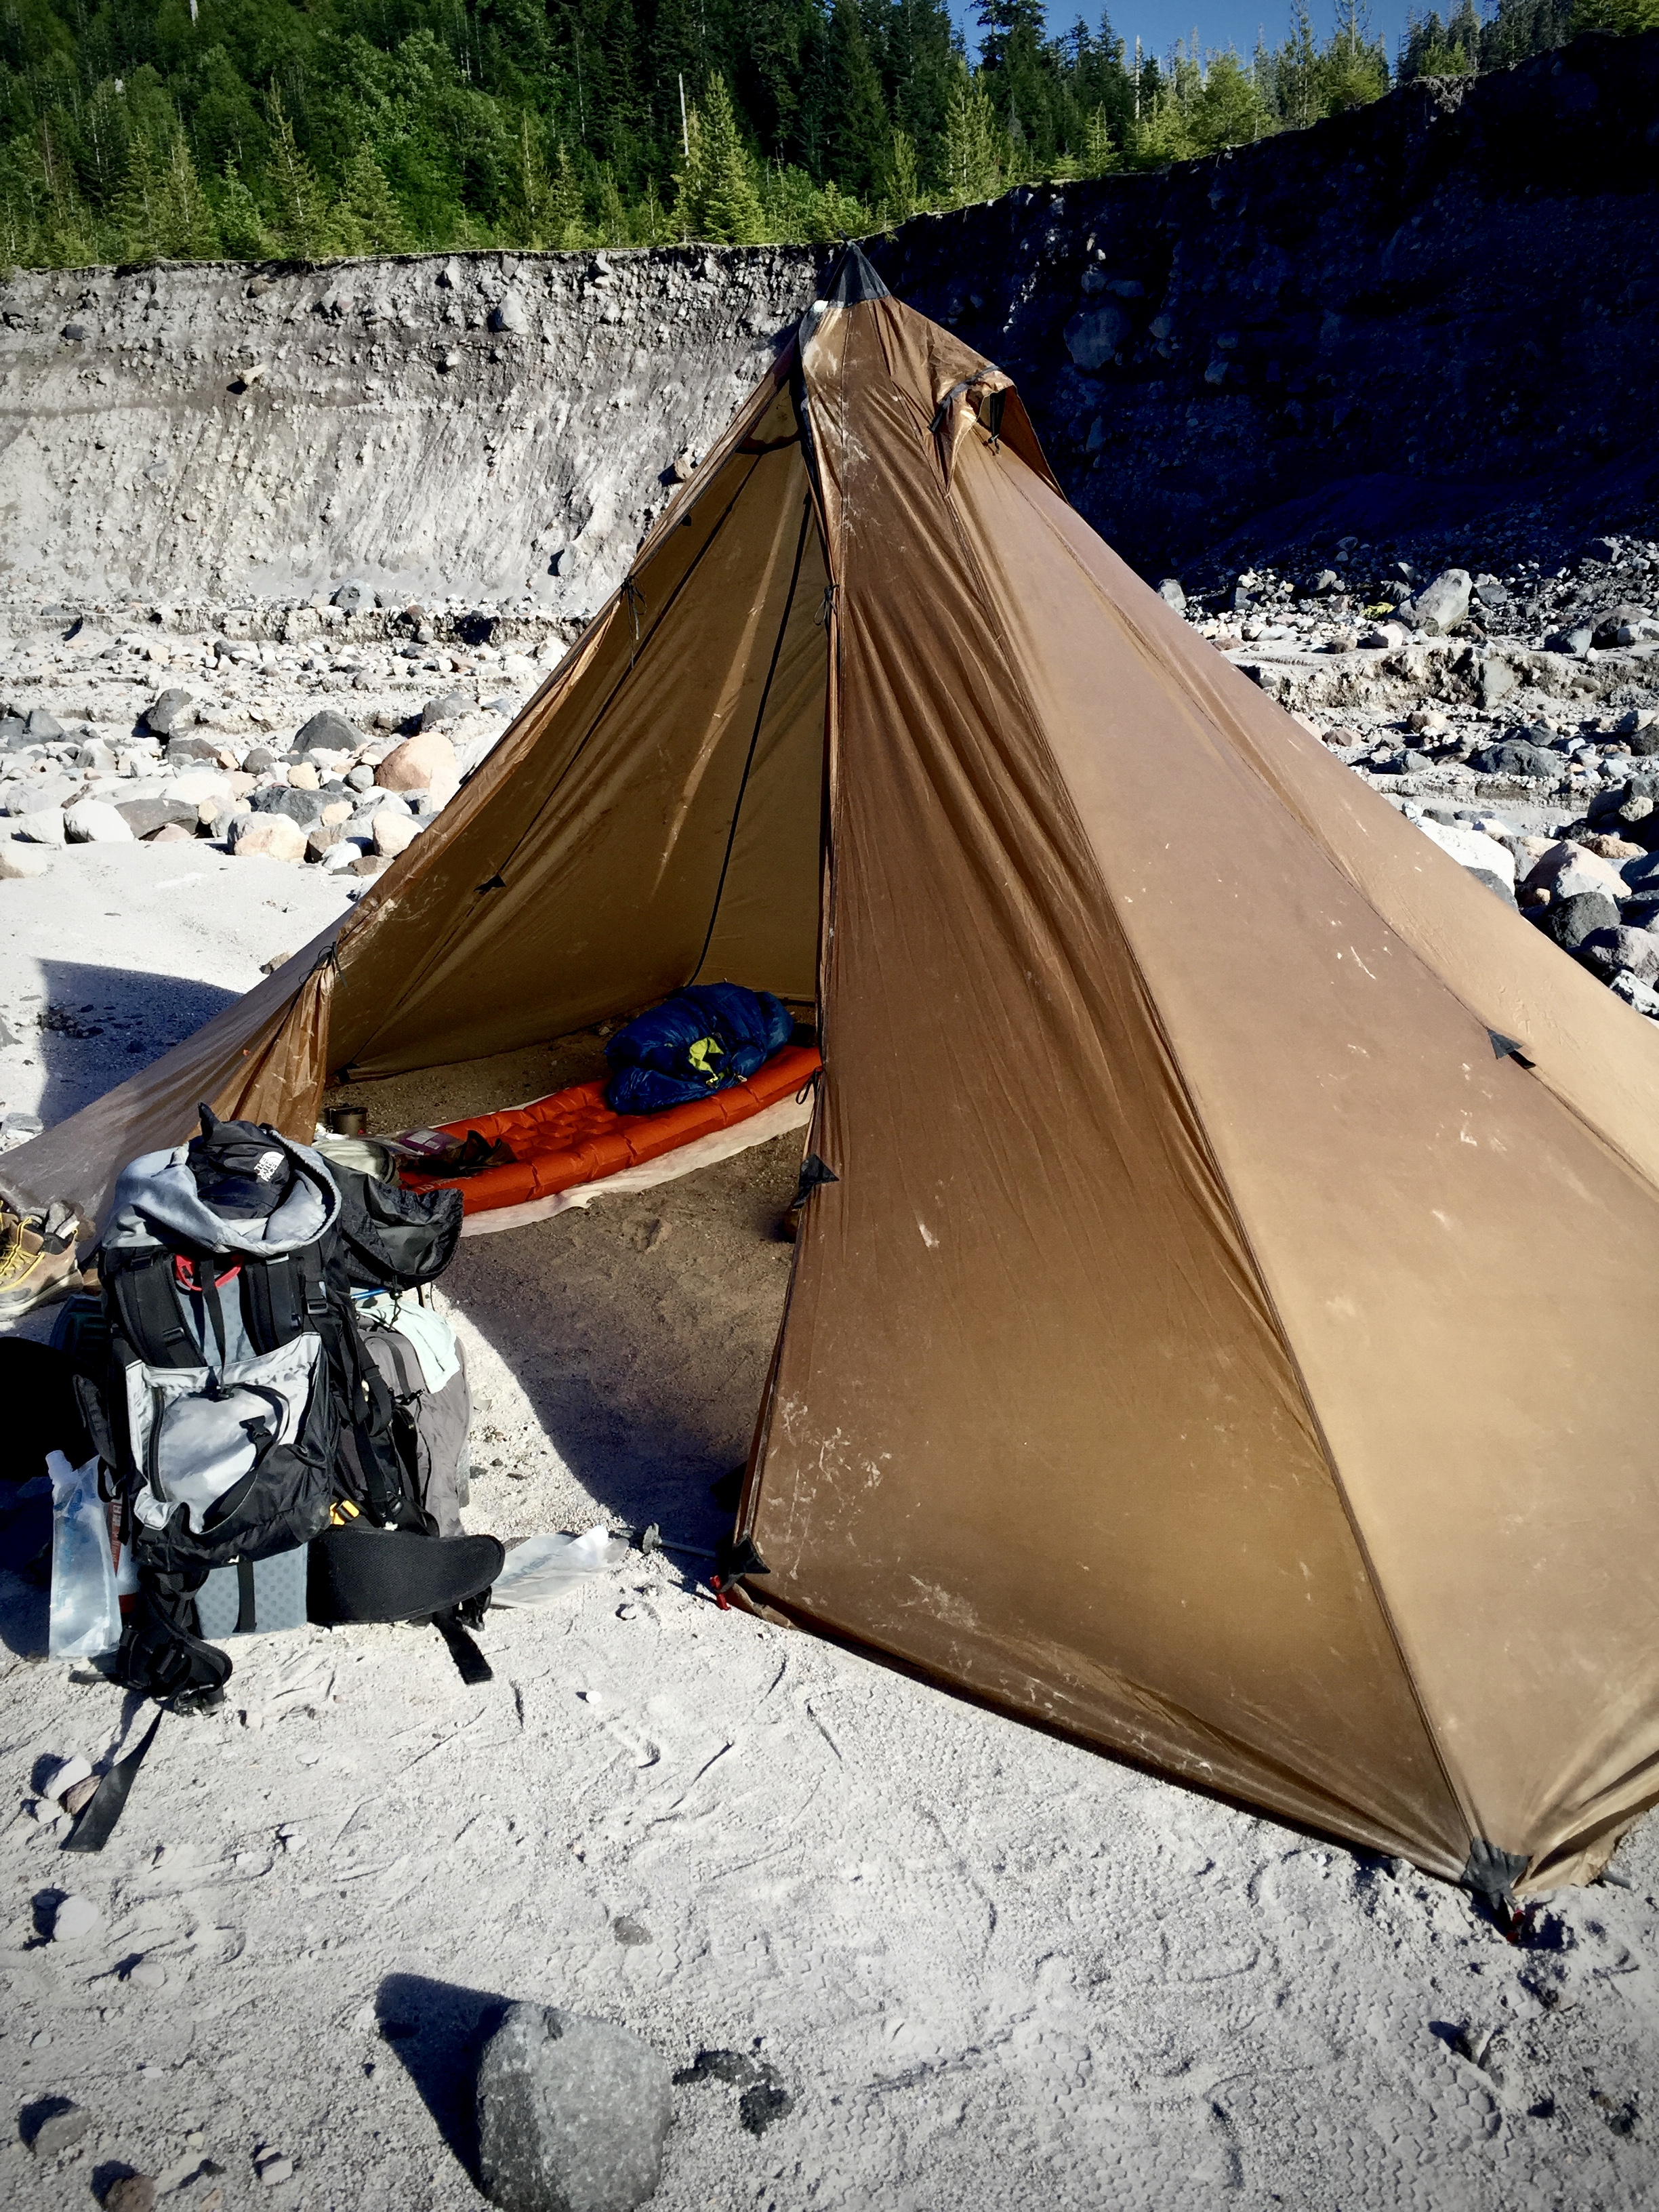 Pitched on a river bottom. Dirty, but still awesome. Have I mentioned I love this tipi?